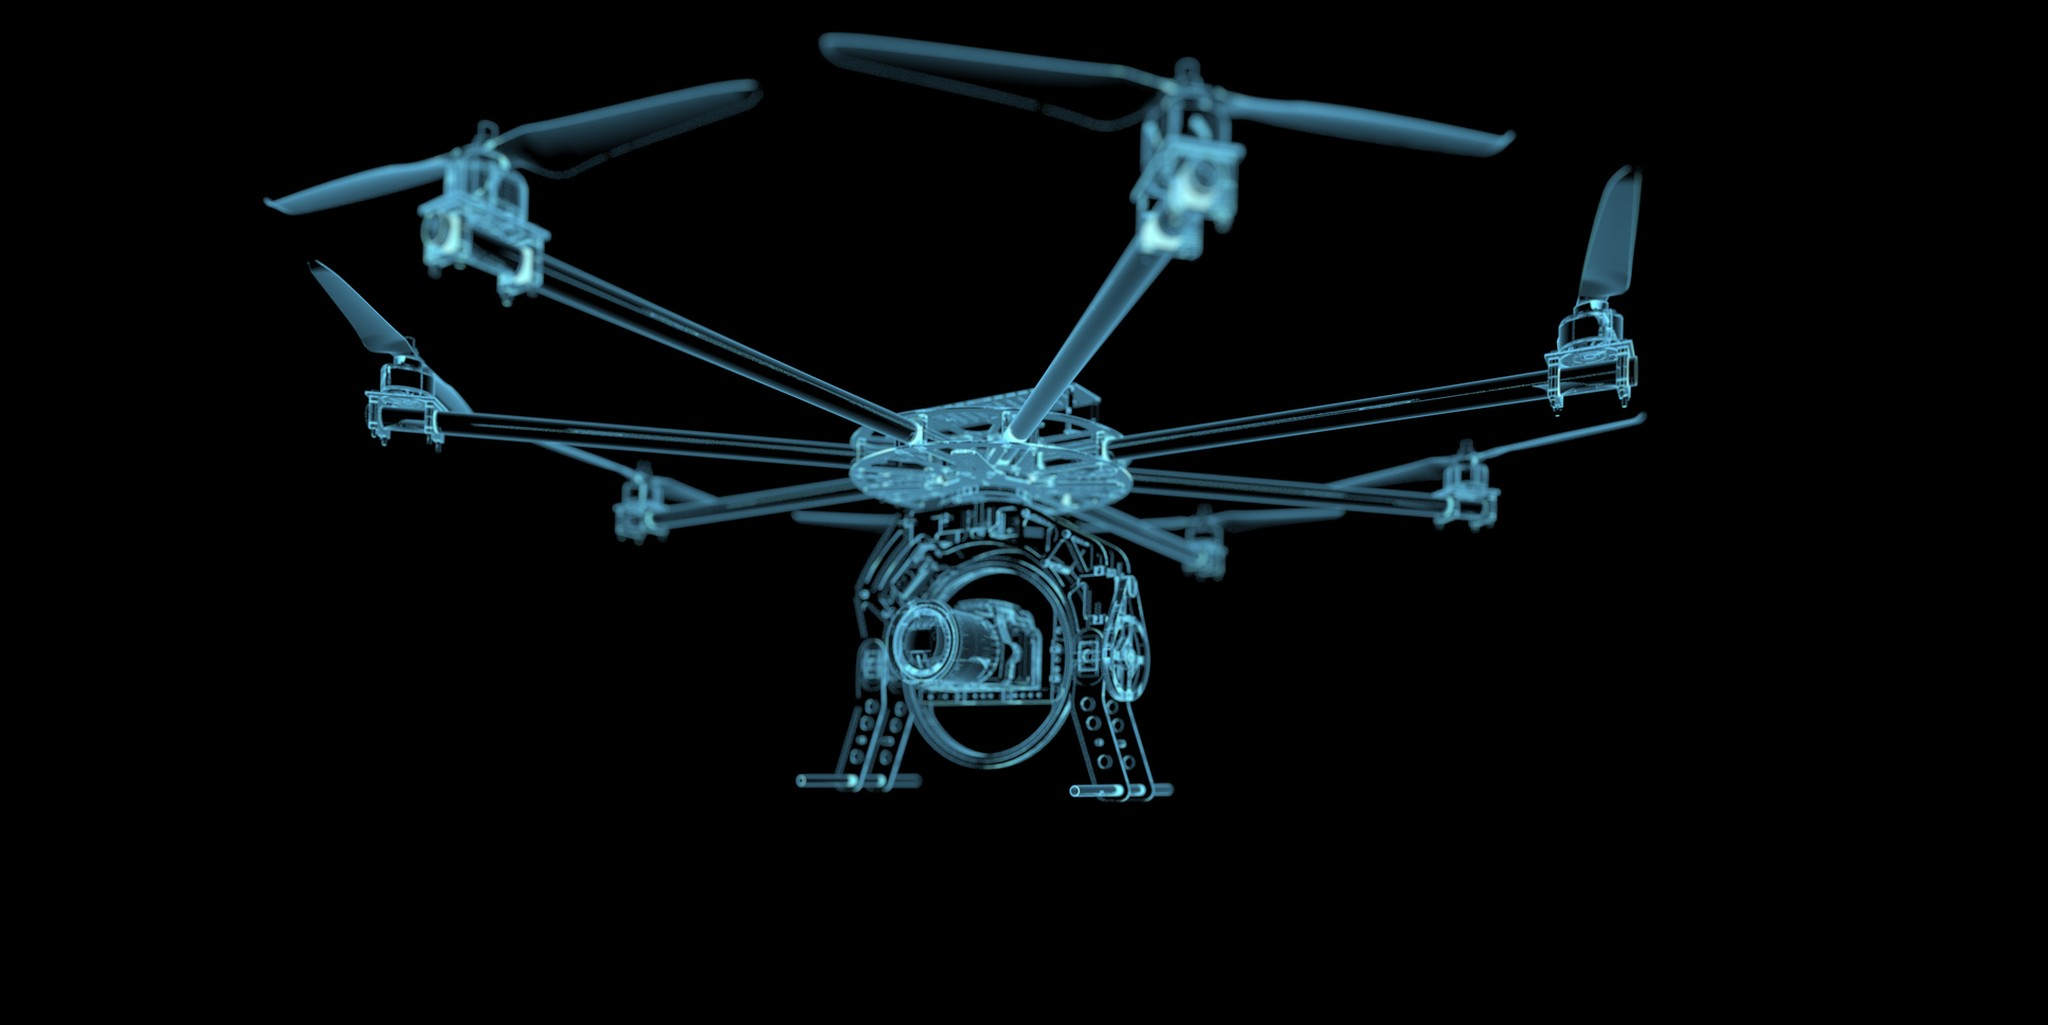 Drone x-ray image